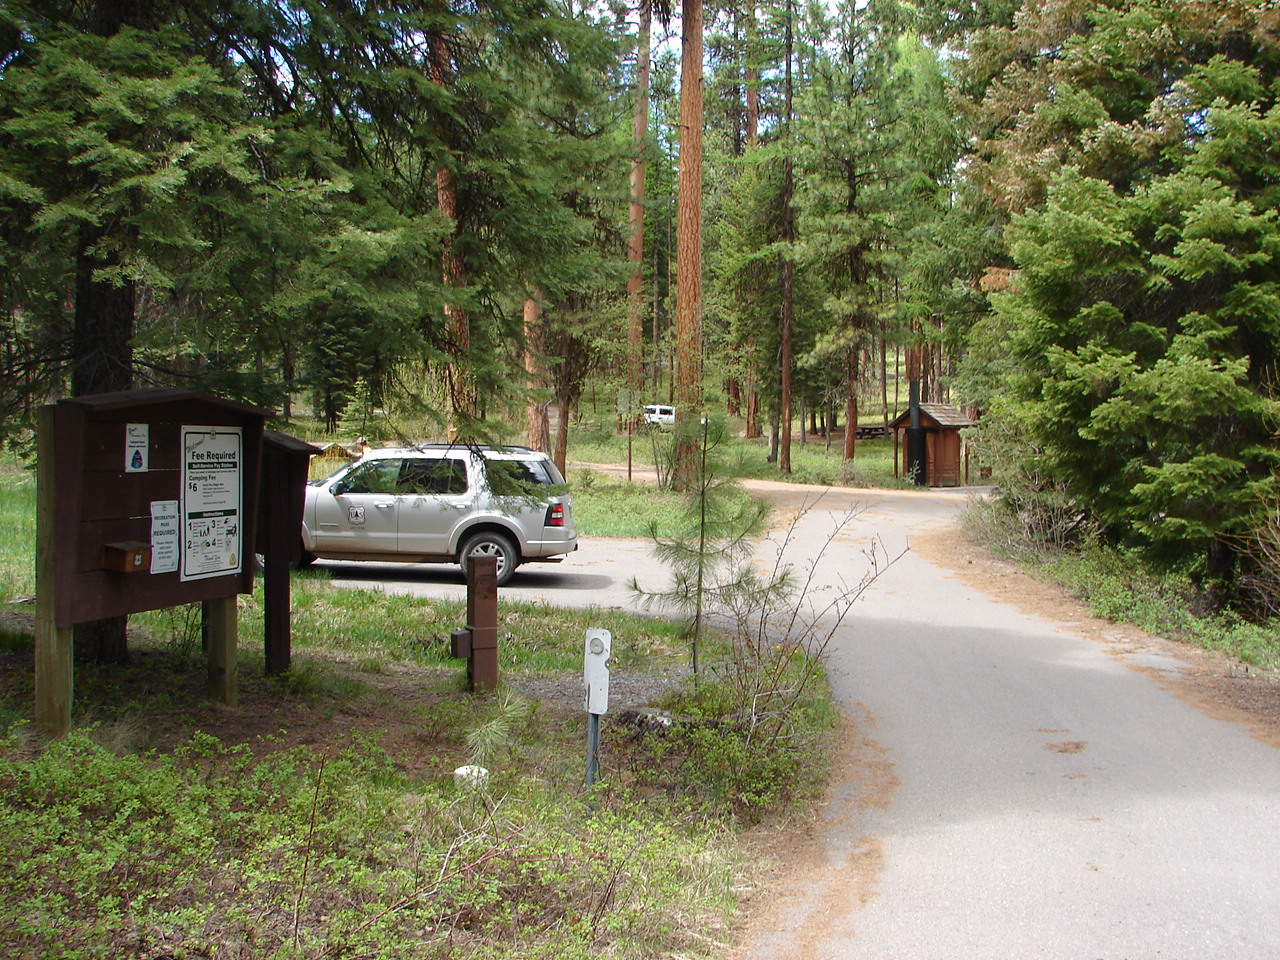 Campground with large ponderosa pine trres and a car parked in a campsite